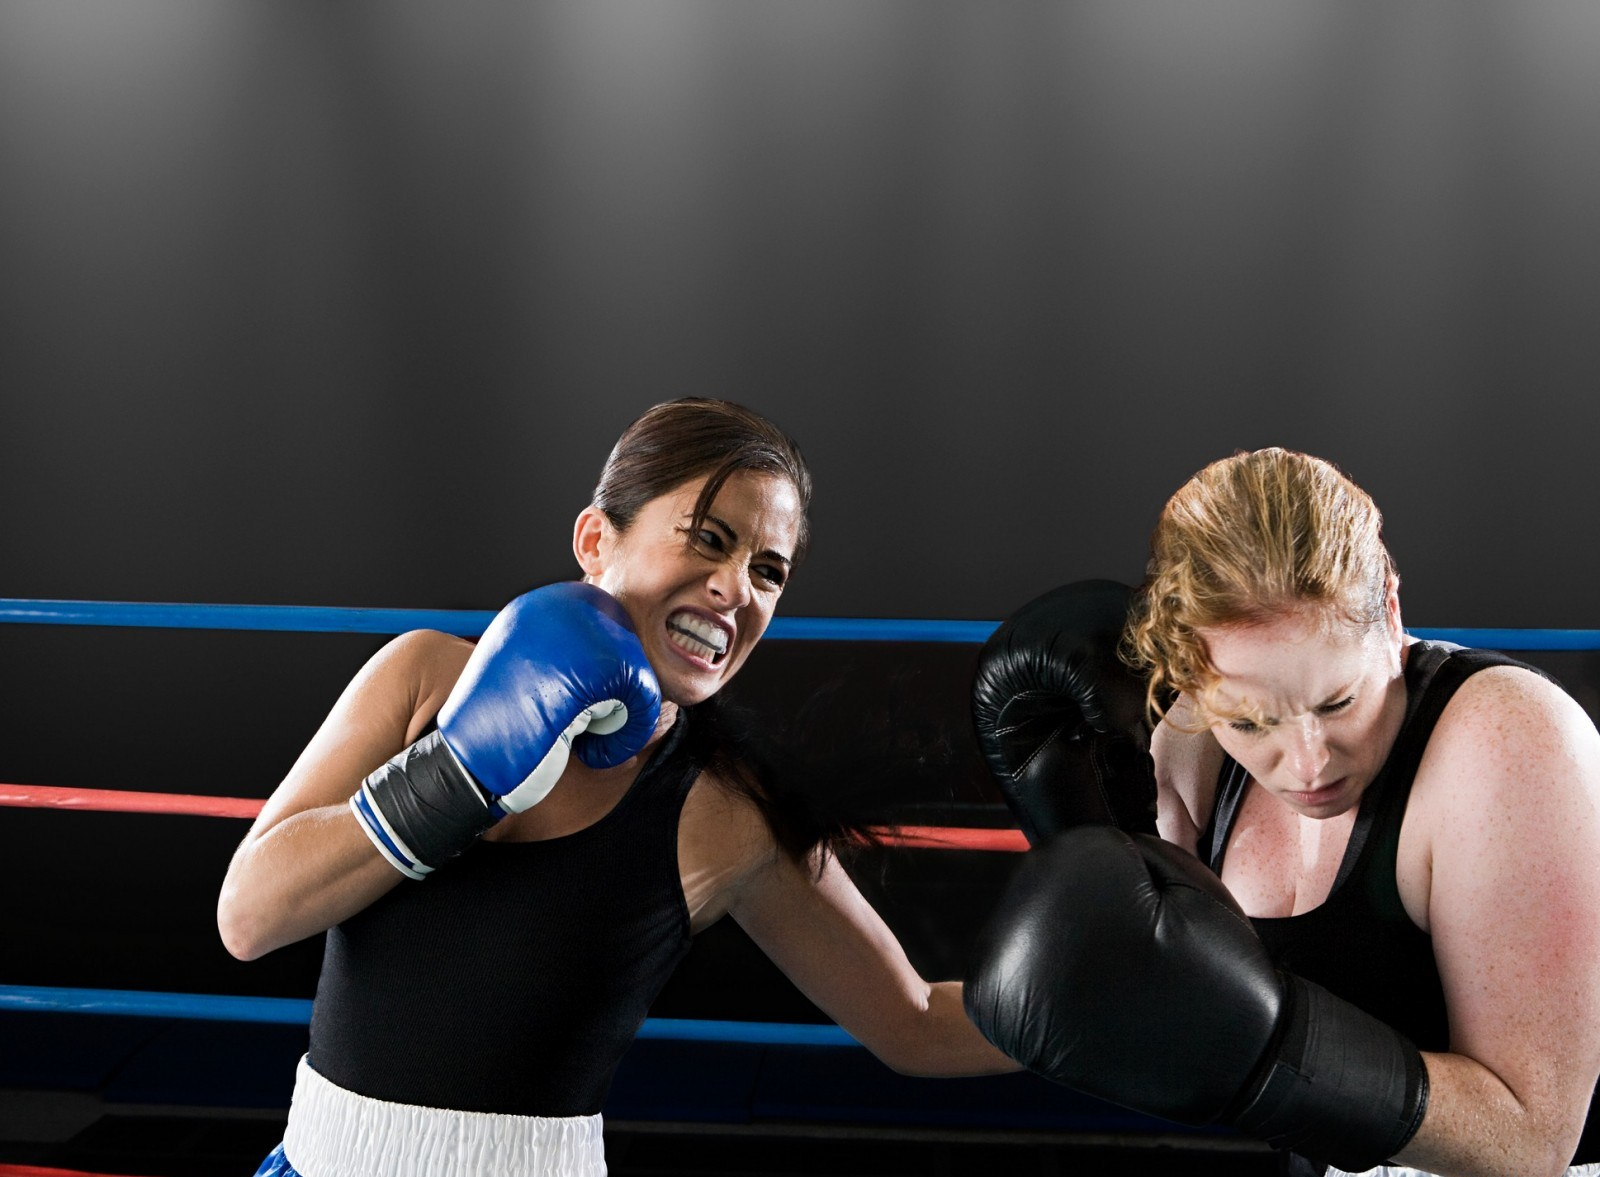 Boxing images